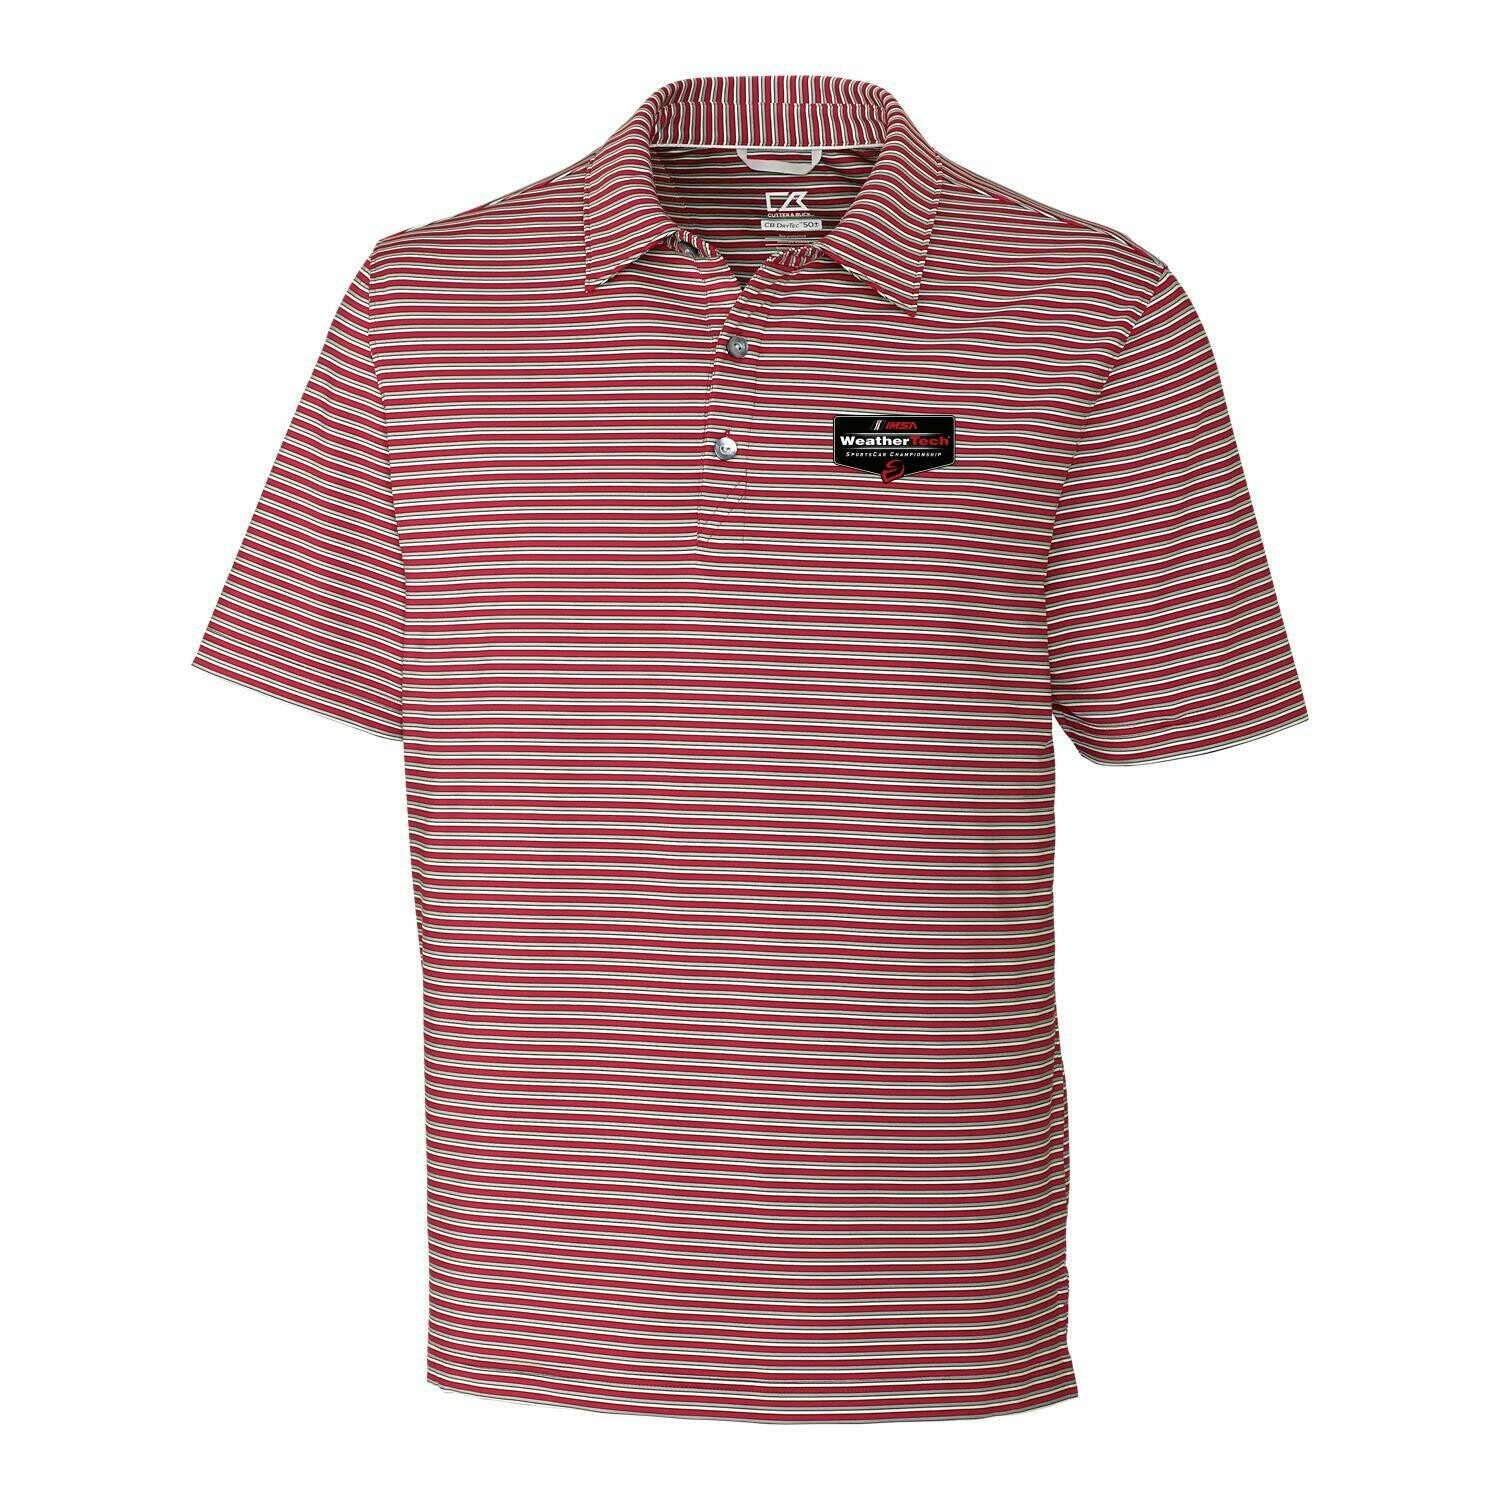 WeatherTech Division Stripe Polo - Cardinal Red Polished